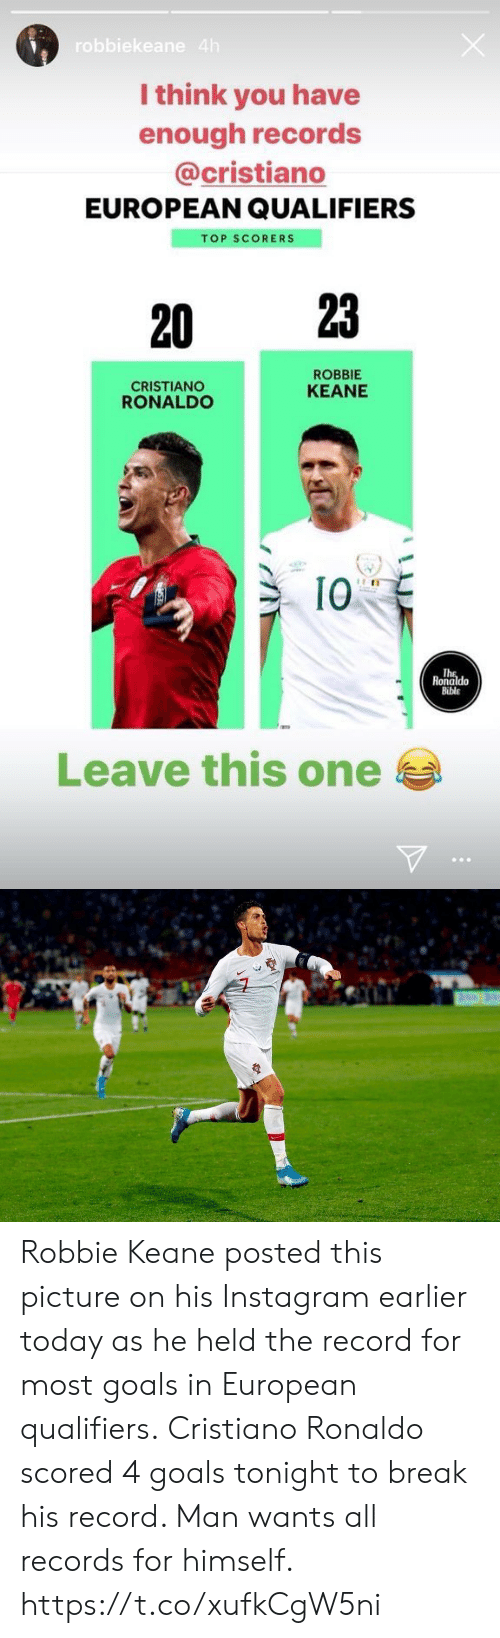 cristiano: robbiekeane 4h  I think you have  enough records  @cristiano  EUROPEAN QUALIFIERS  TOP SCORERS  23  20  ROBBIE  CRISTIANO  RONALDO  KEANE  10  The  Ronaldo  Bible  Leave this one Robbie Keane posted this picture on his Instagram earlier today as he held the record for most goals in European qualifiers.  Cristiano Ronaldo scored 4 goals tonight to break his record. Man wants all records for himself. https://t.co/xufkCgW5ni